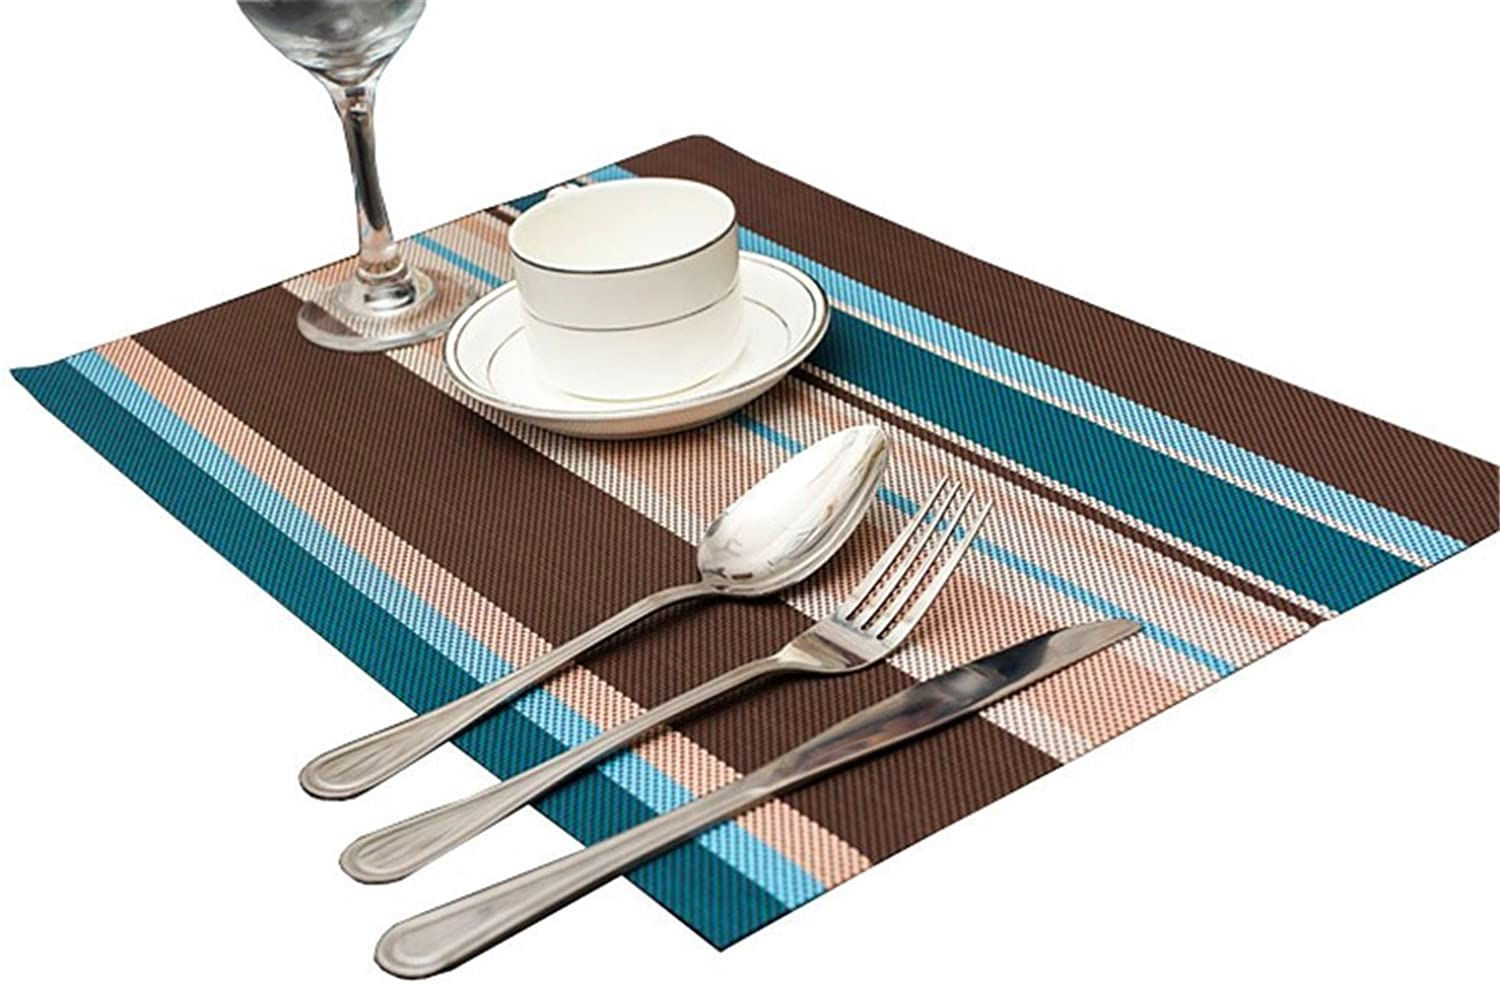 orden ahora con gran descuento y entrega gratuita Kangkang@ Set of of of 6 Creative Stripe Water-proof Place-mat Table Setting Plate Pad(azul) Western Europe Type Stripe Table Mats PVC Waterproof Heat Insulation Cup Mat Bowls Mat Doily by Kangkang  100% a estrenar con calidad original.